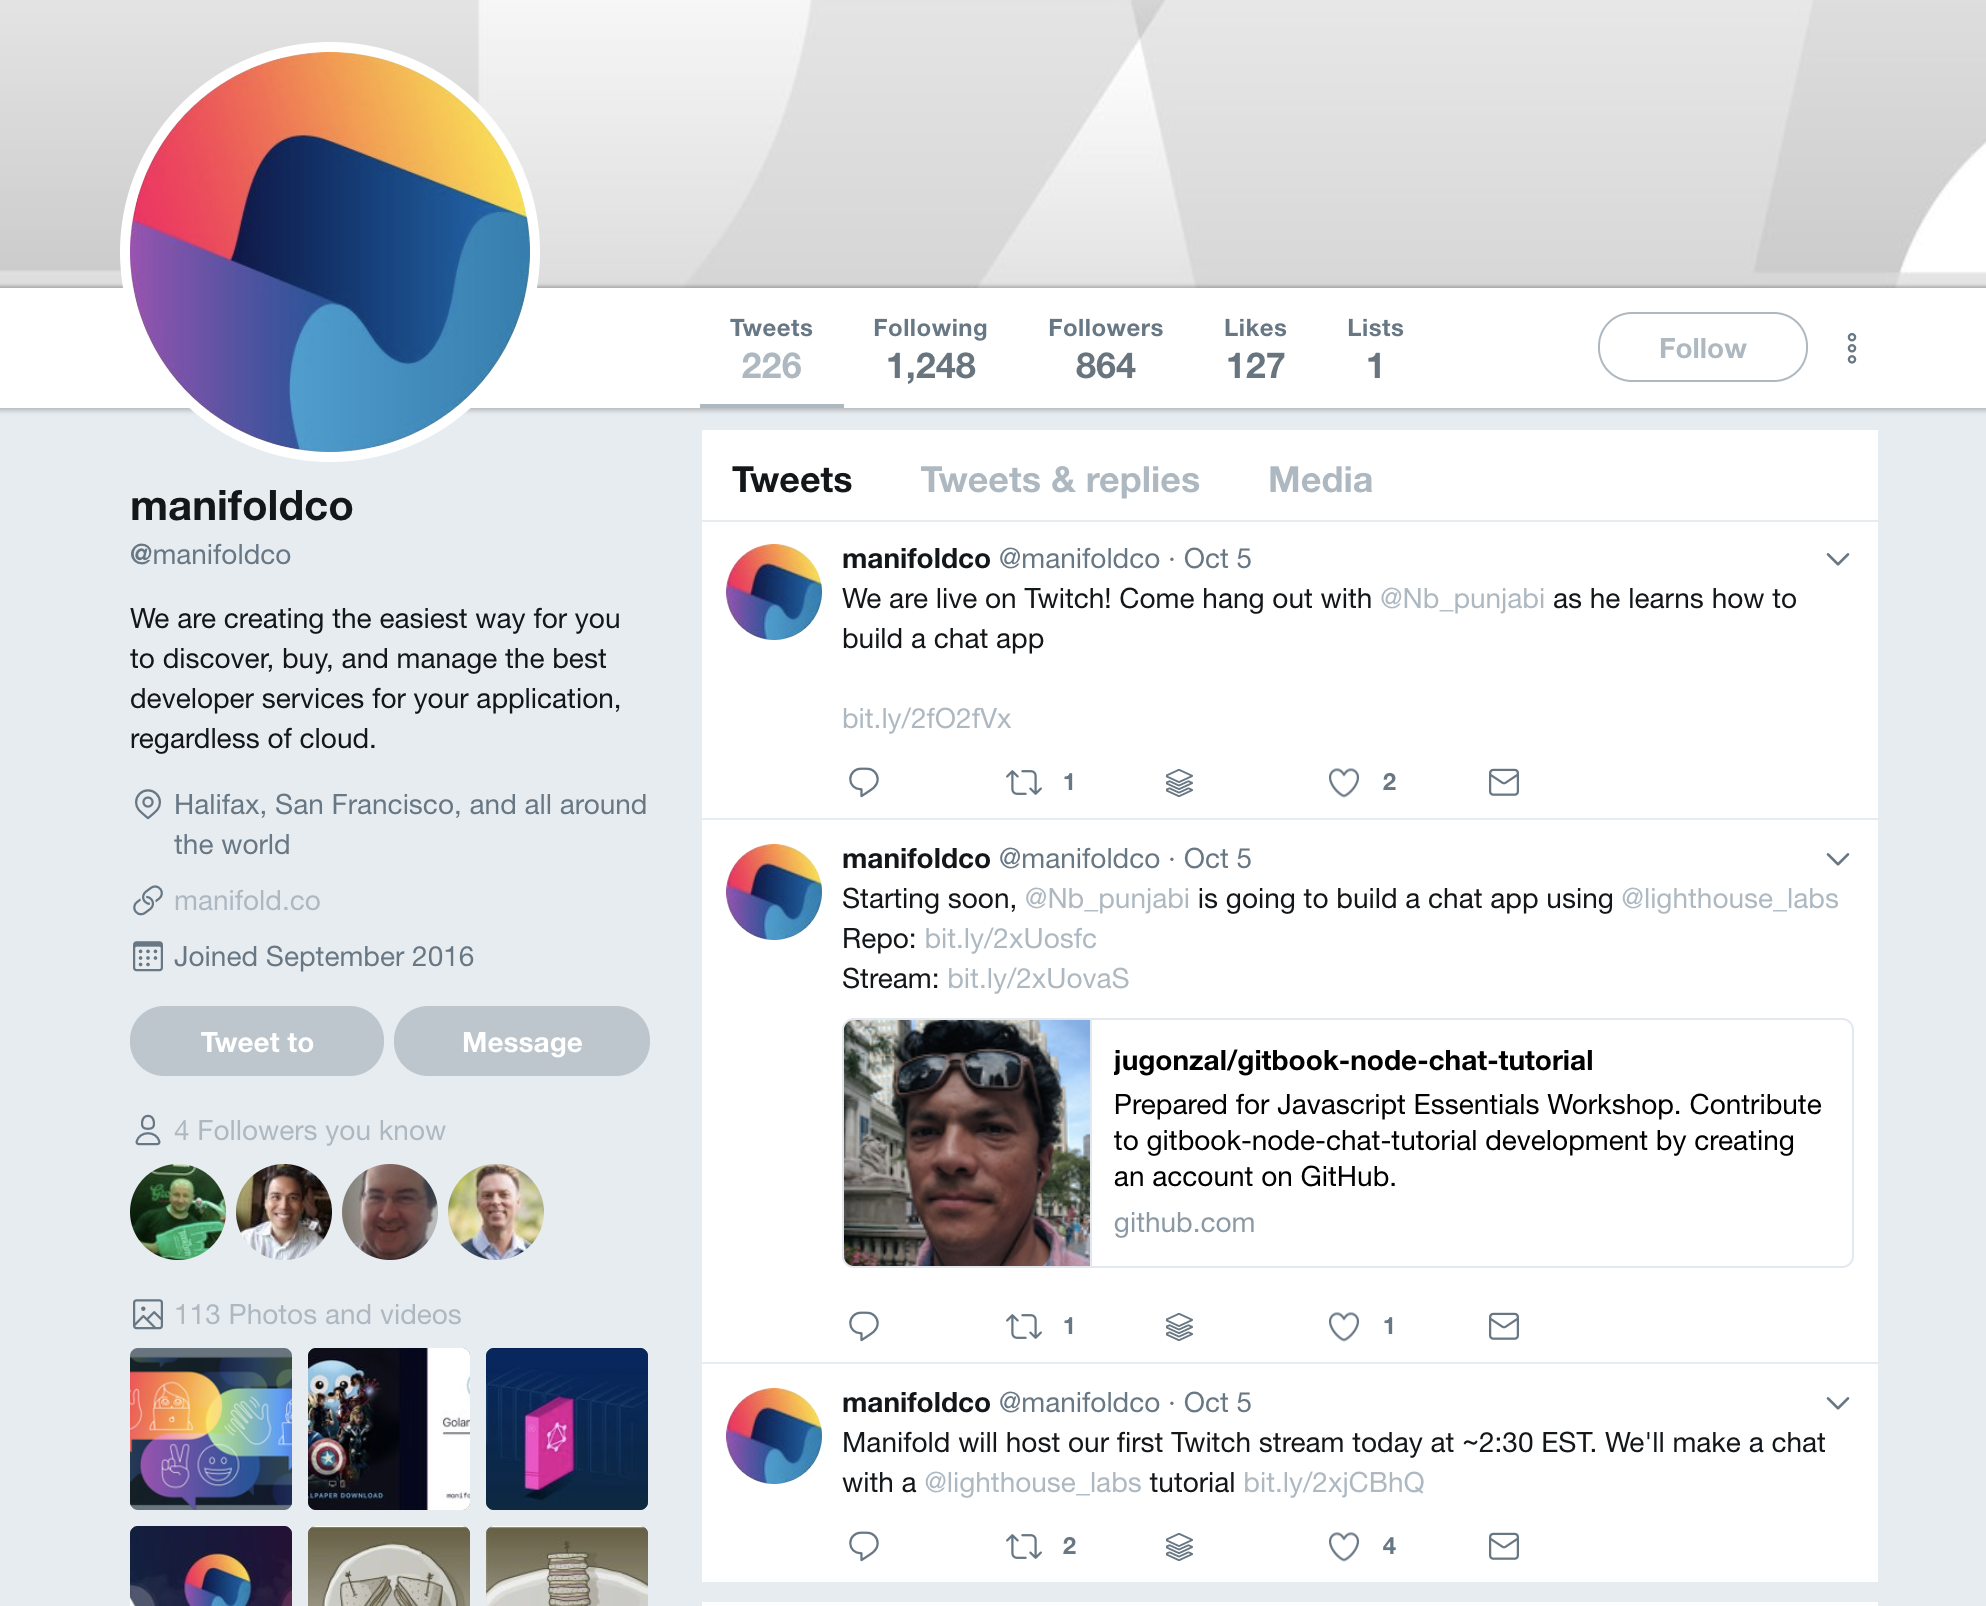 The @manifoldco profile page at Twitter